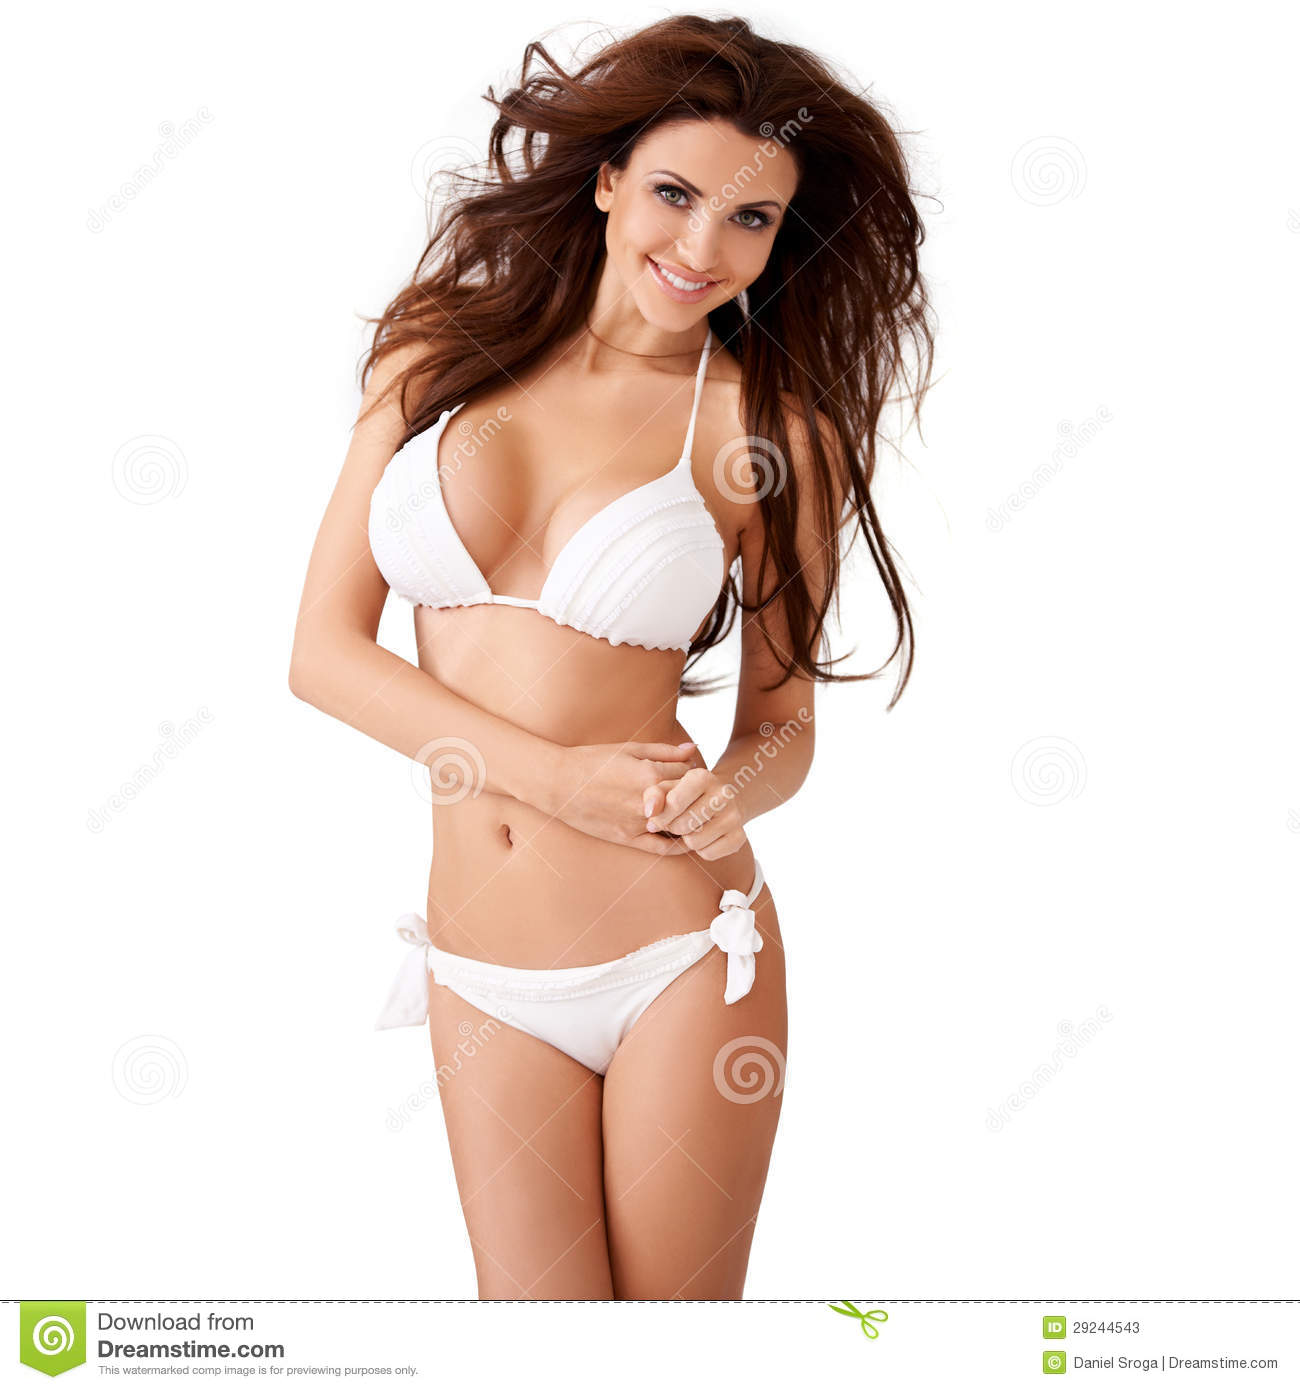 Vivacious young brunette woman with a beautiful smile and her hair blowing  in the breeze posing in a white bikini three quarter isolated studio  portrait edde6e2d6434